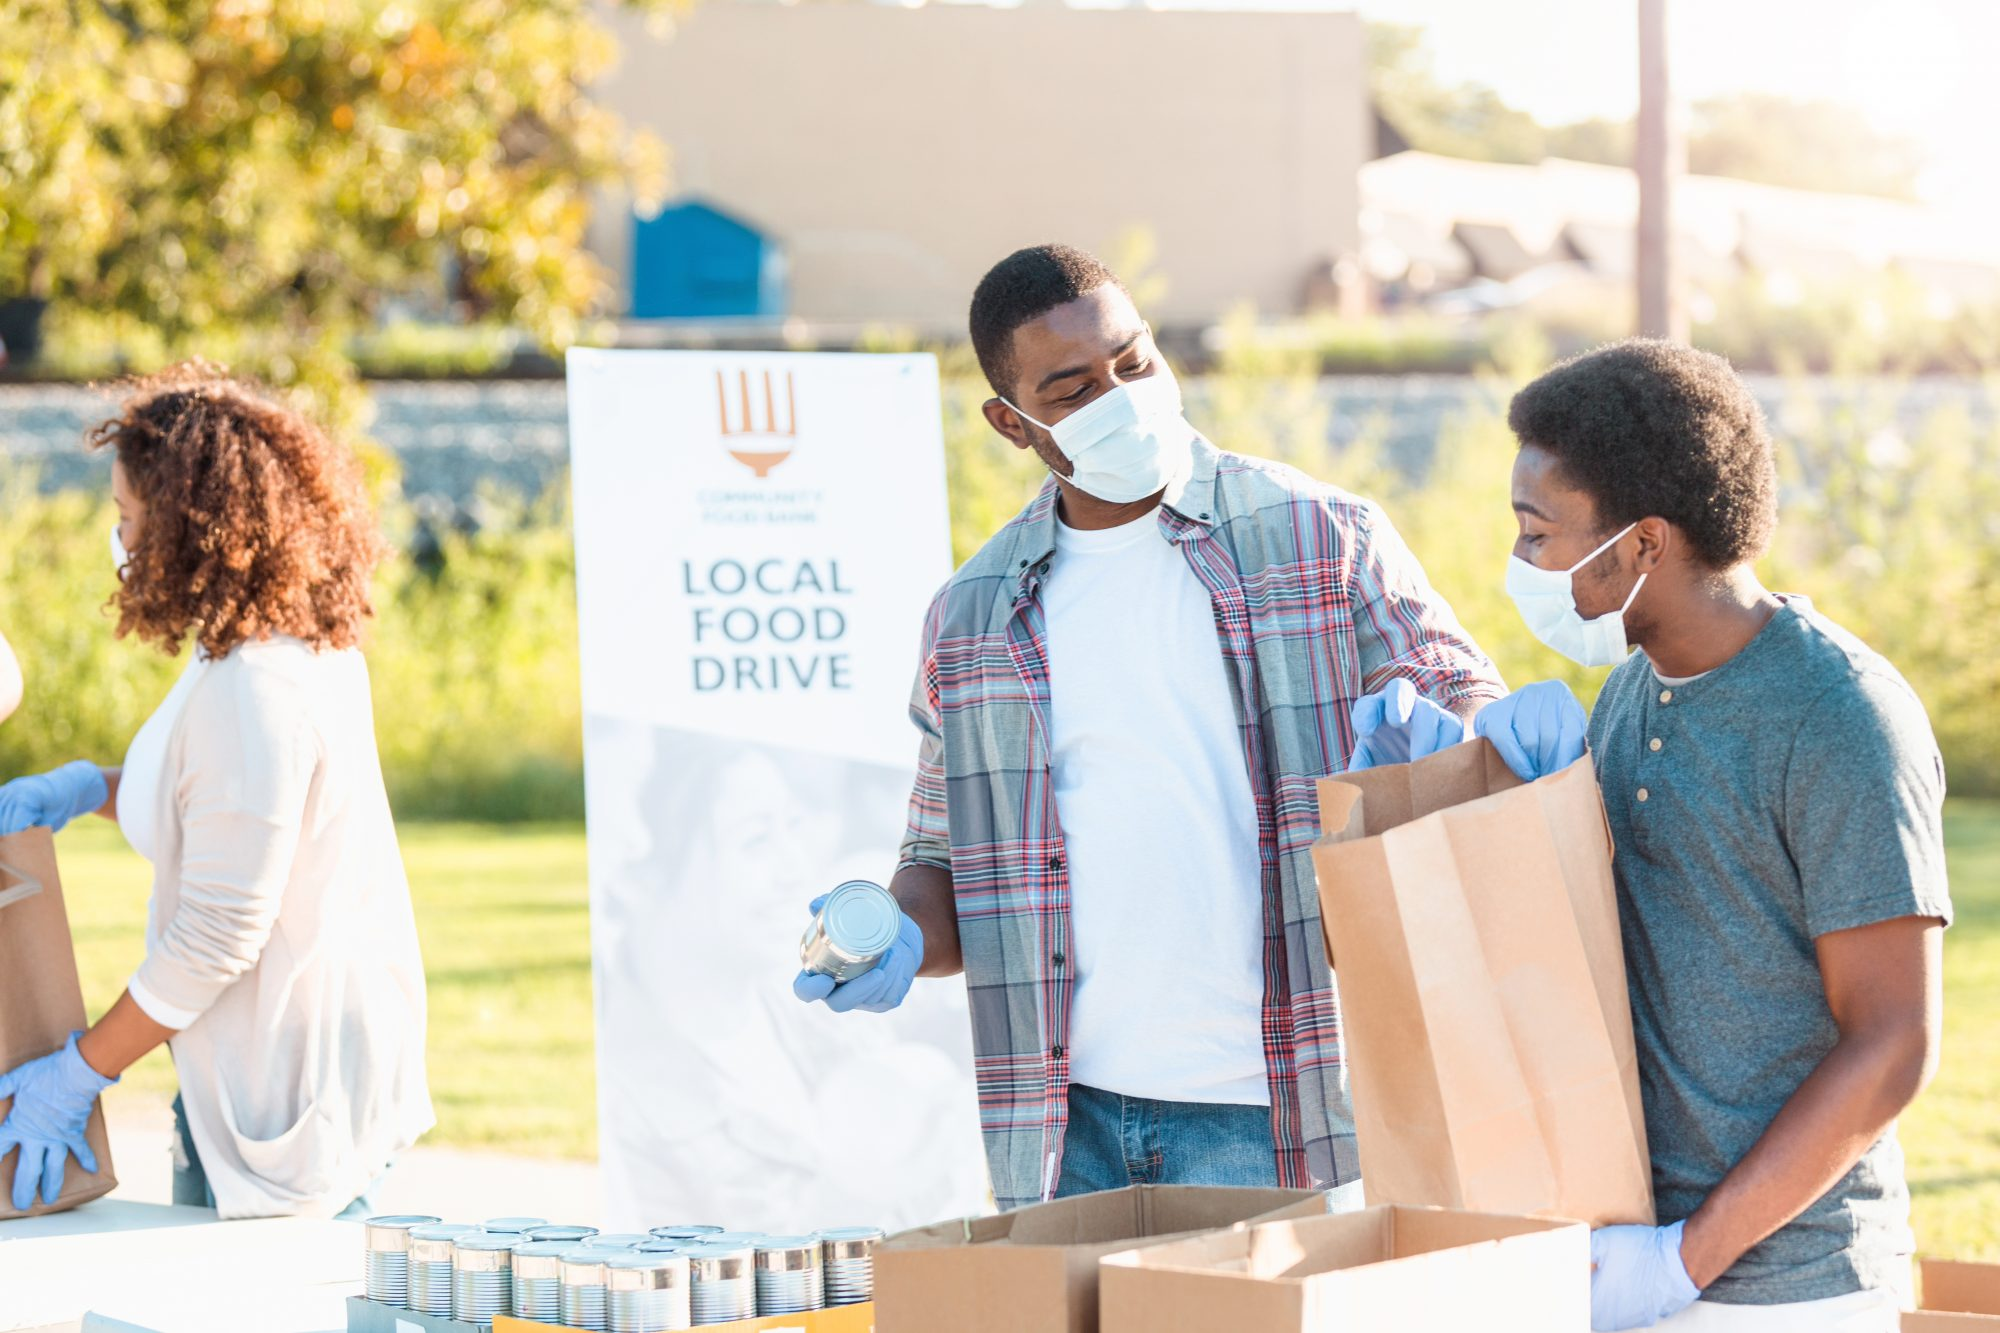 Father and son spend time together at food drive